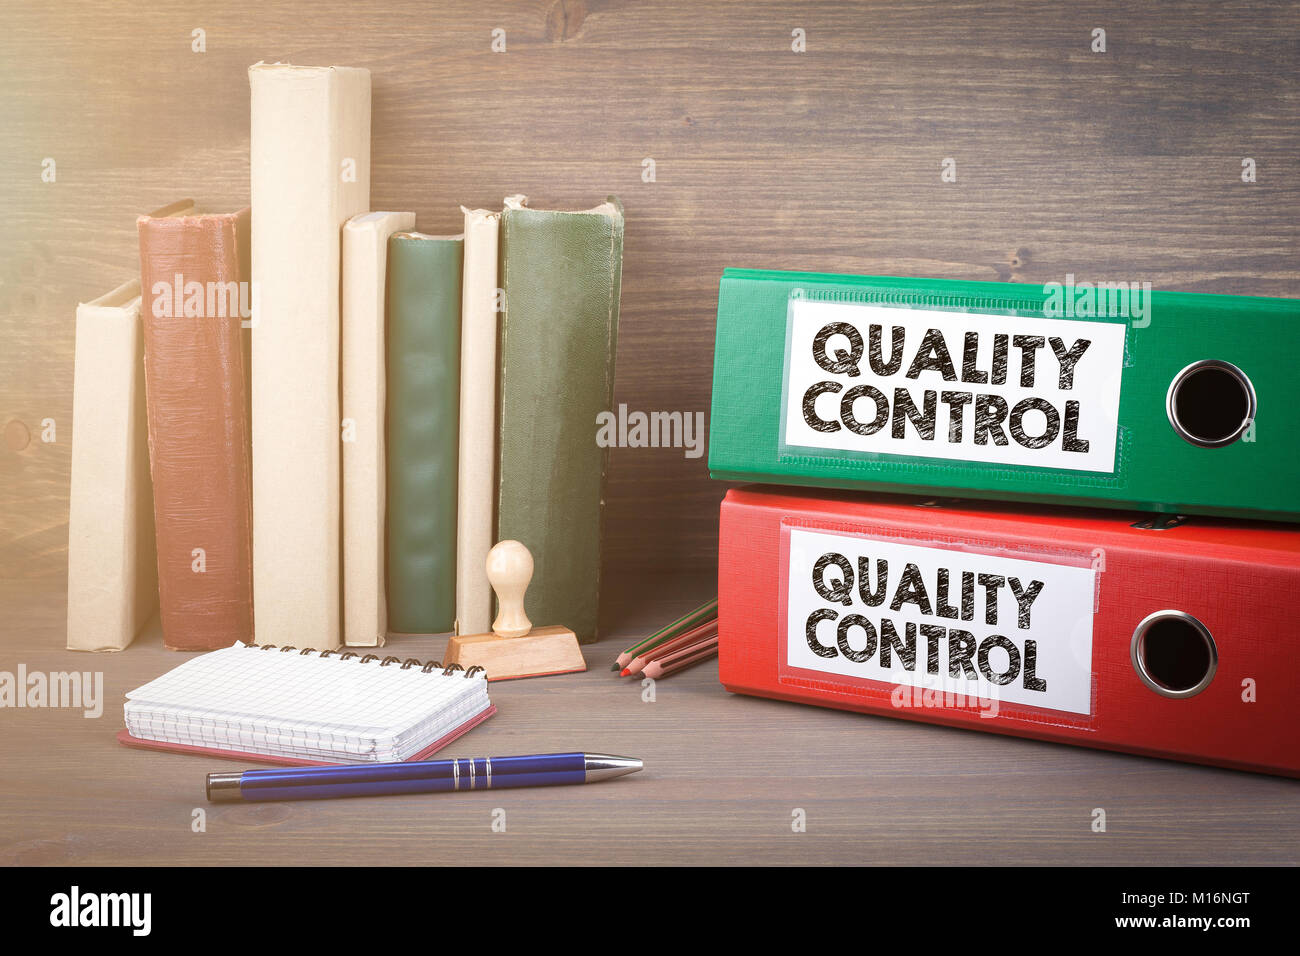 Quality Control. Binders on desk in the office. Business background - Stock Image